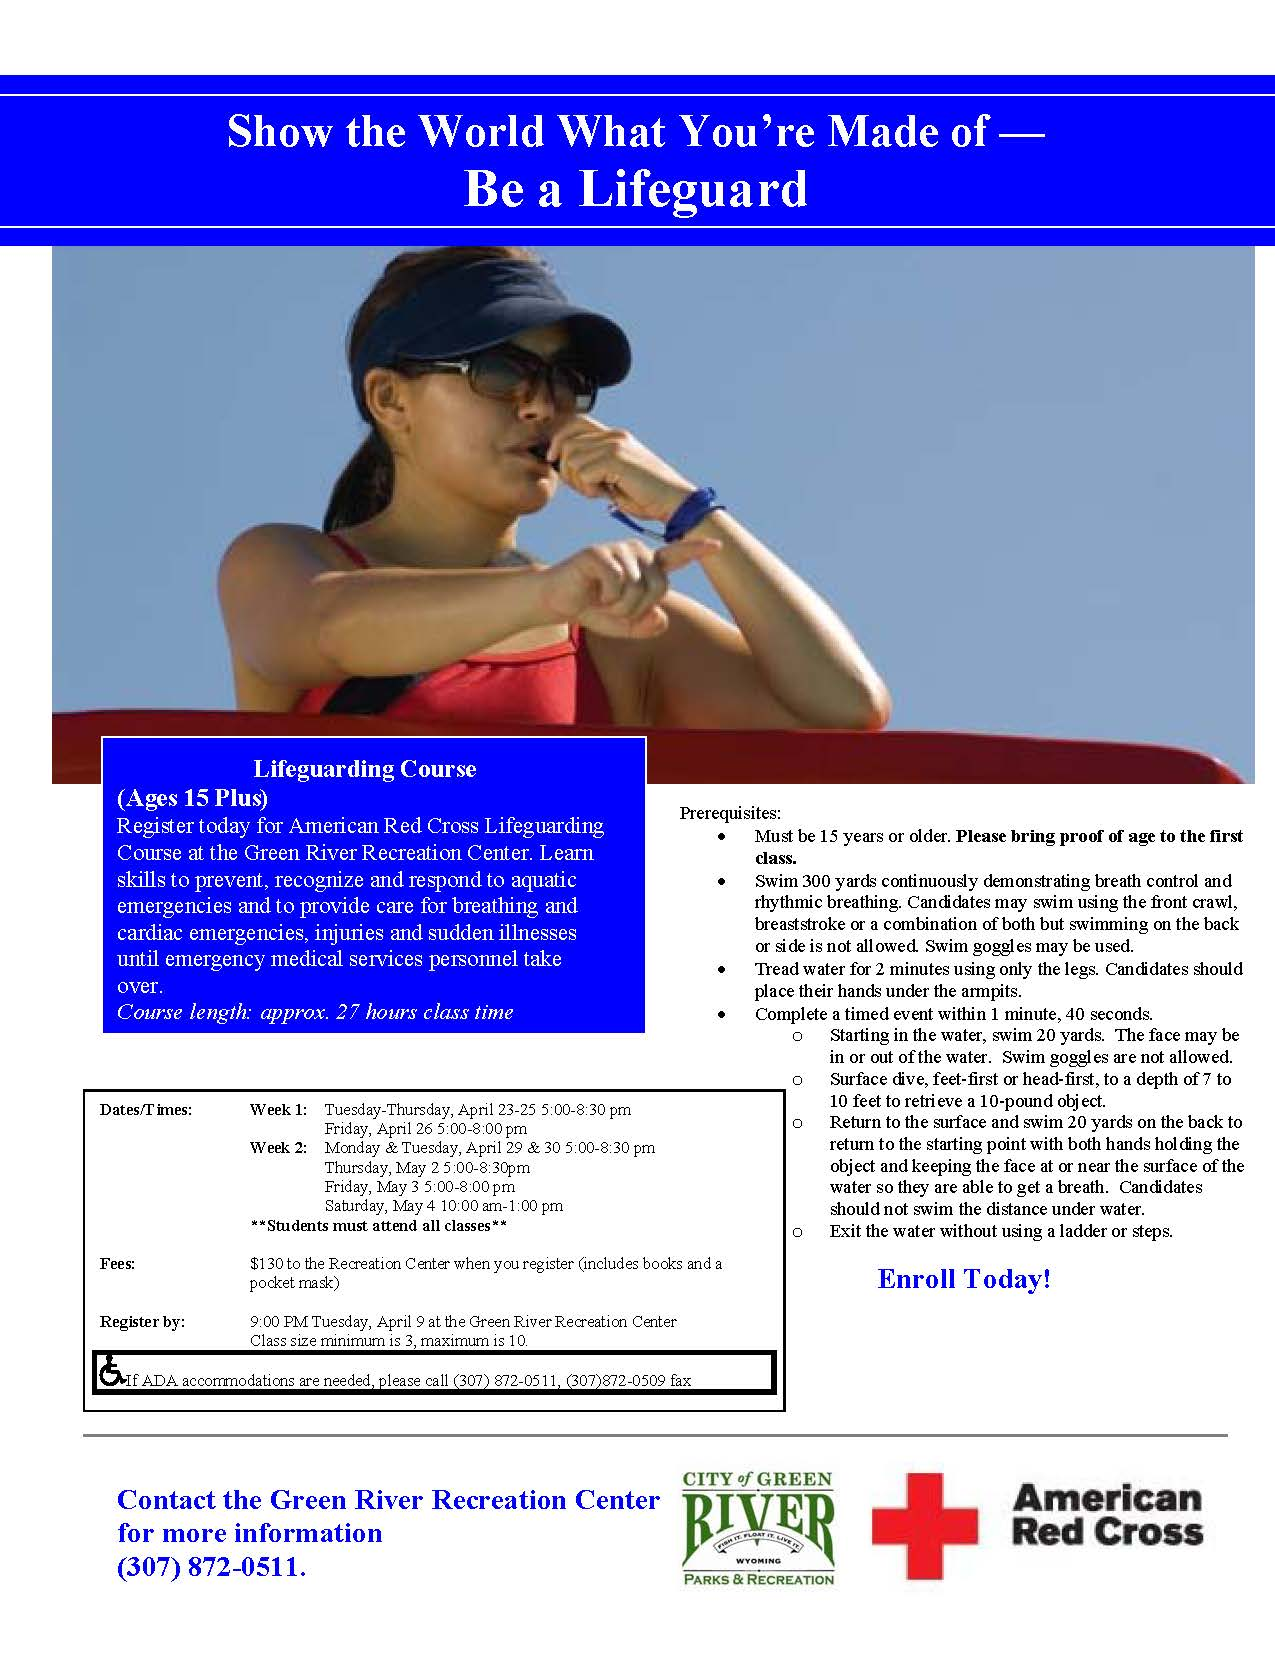 Lifeguarding Course flier 4.2019